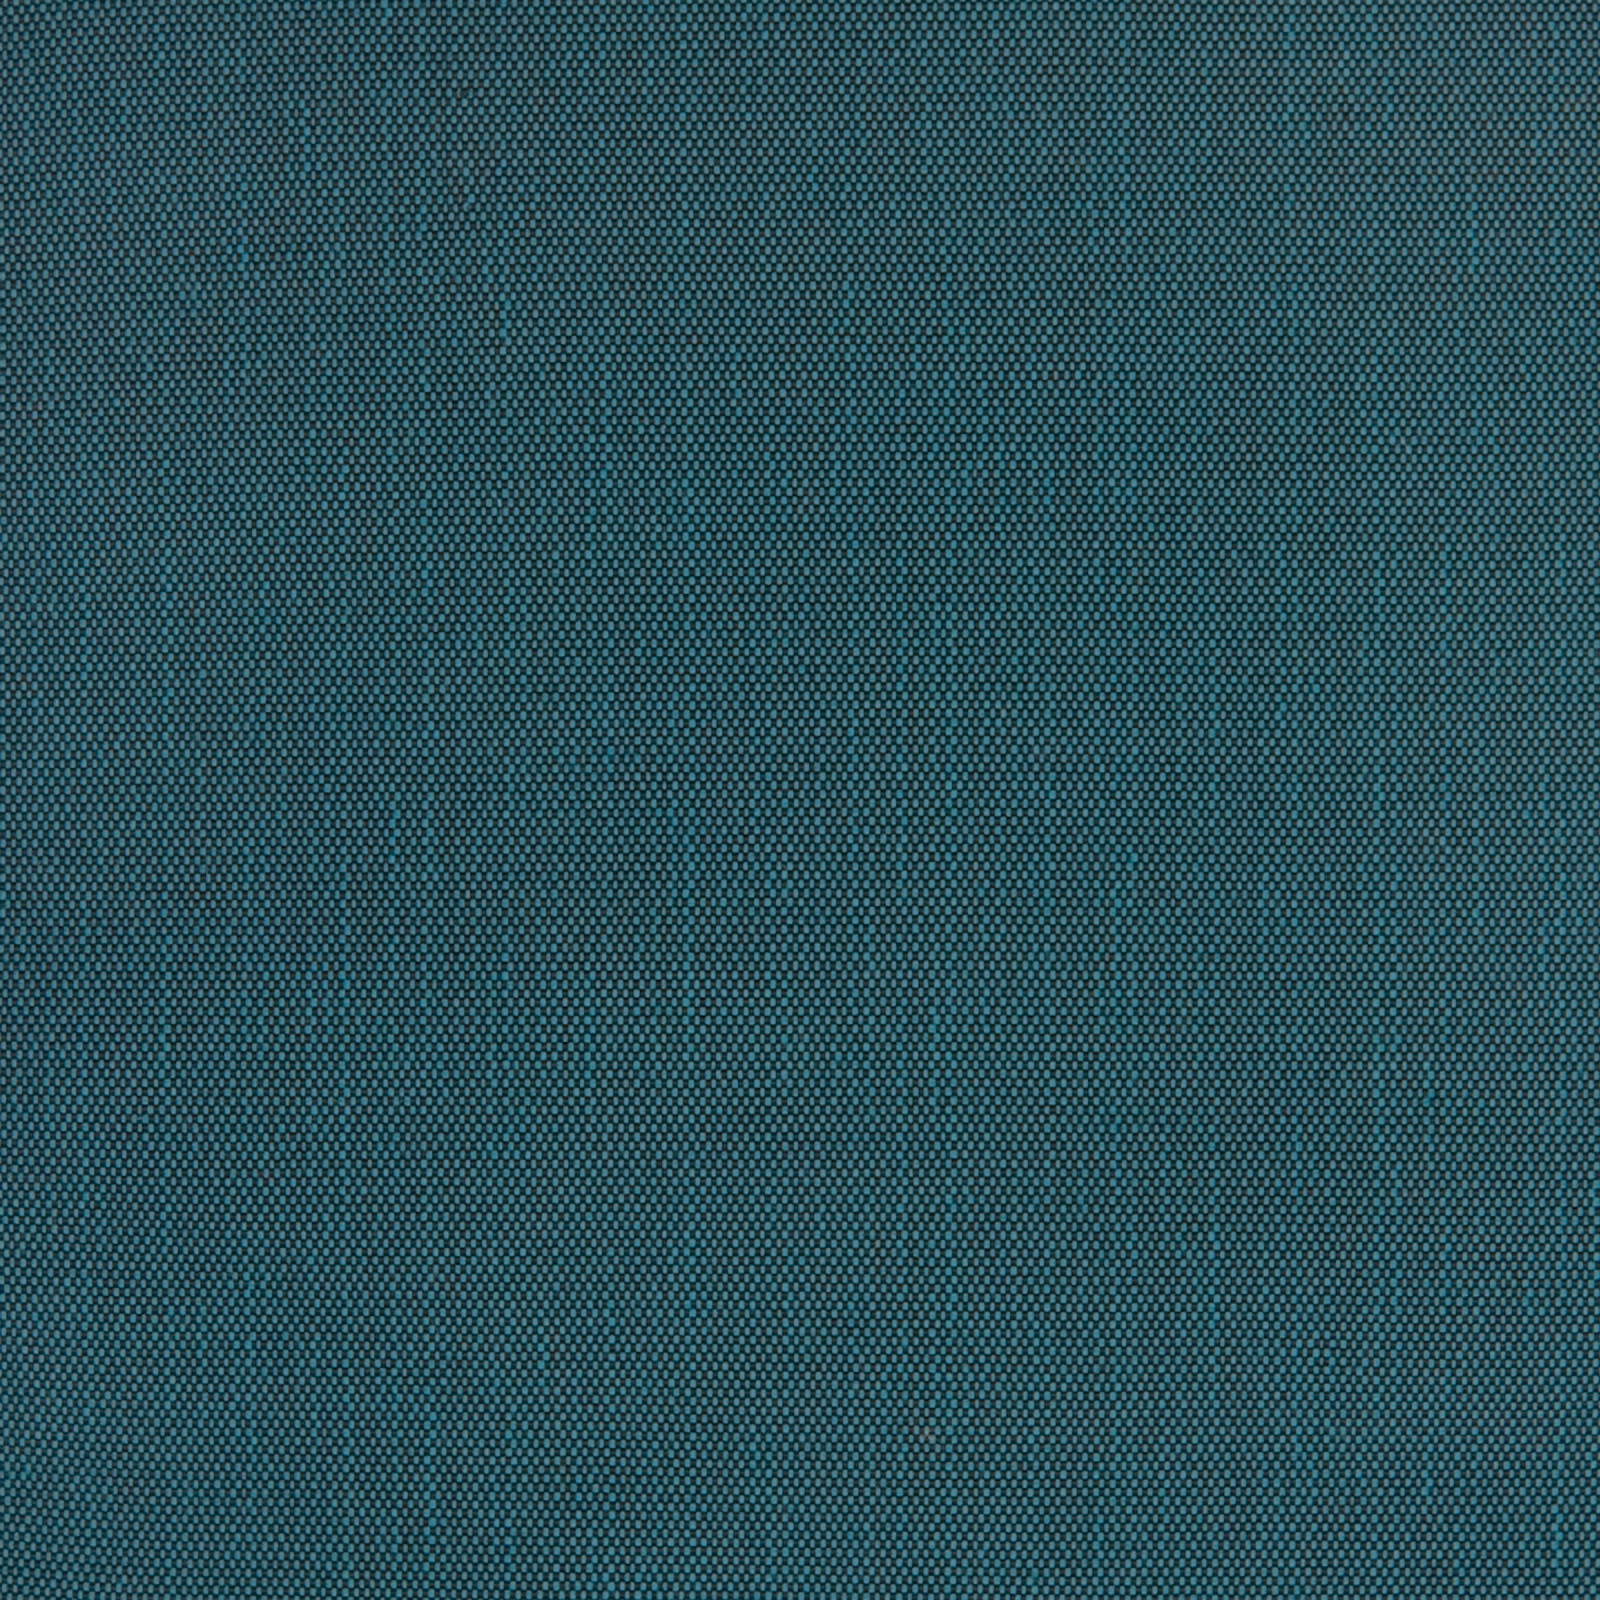 B1241 Dark Teal Greenhouse Fabrics